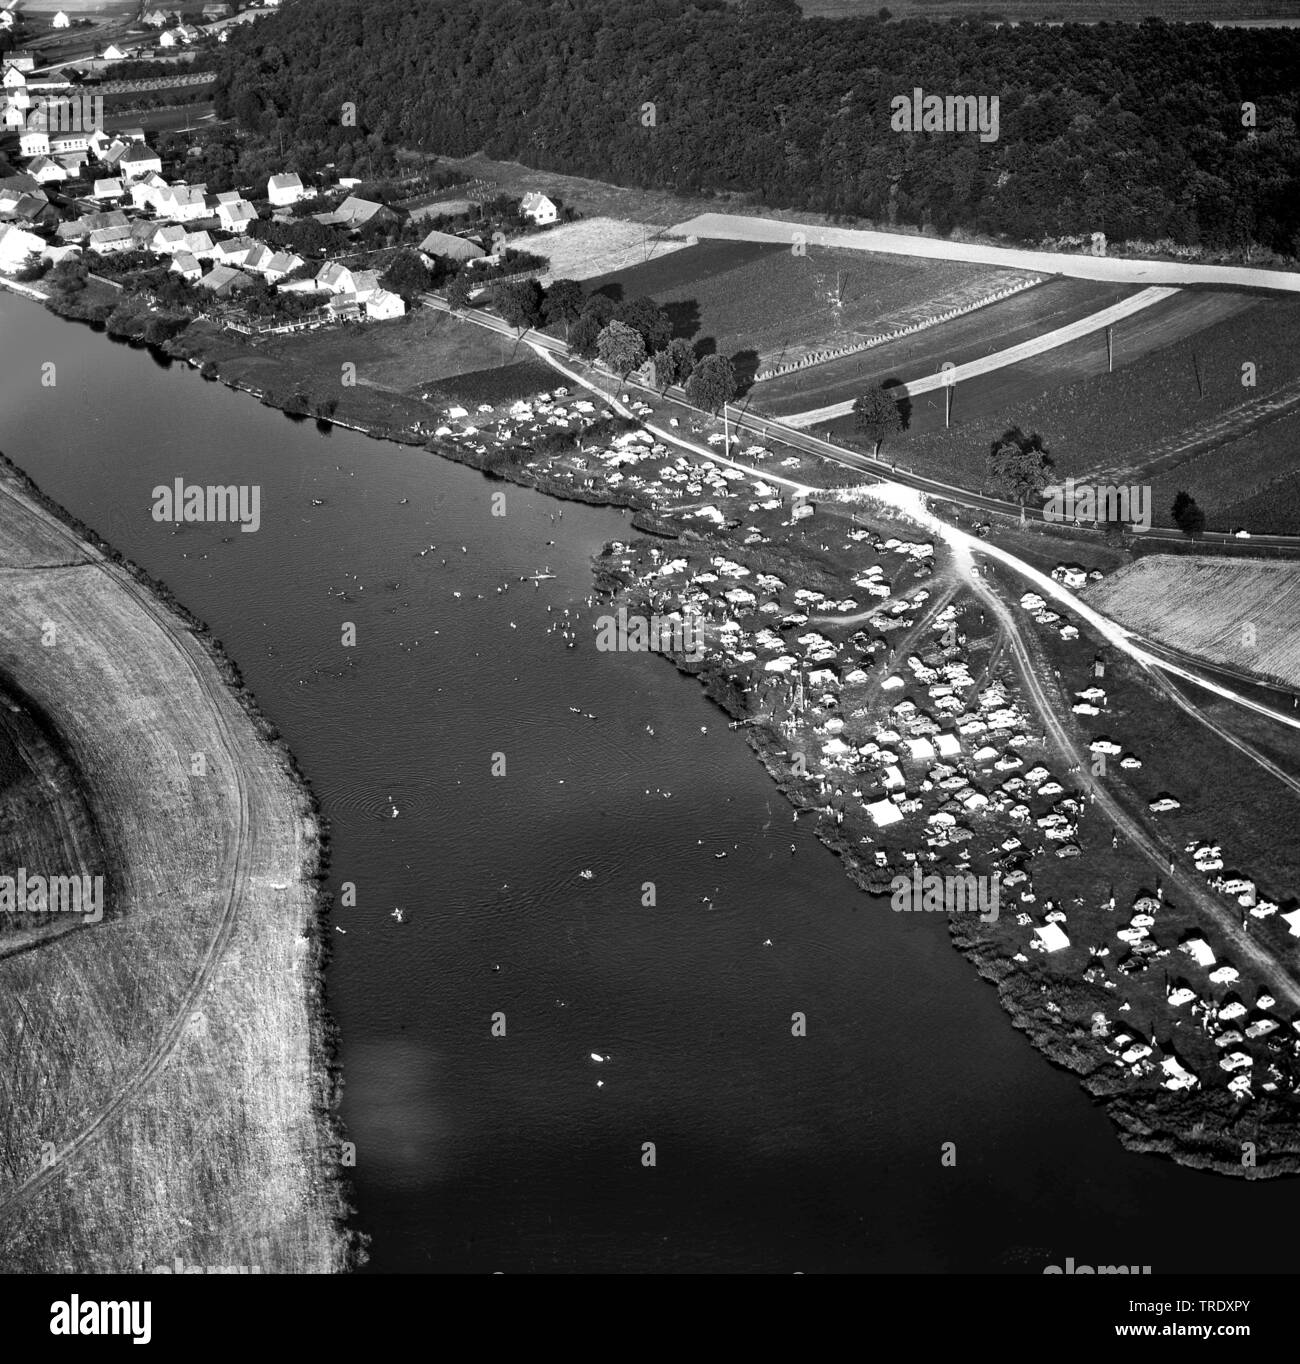 persons bathing in river Regen North of Regensburg, aerial photo from 02.09.1961, Germany, Bavaria, Ratisbon Stock Photo